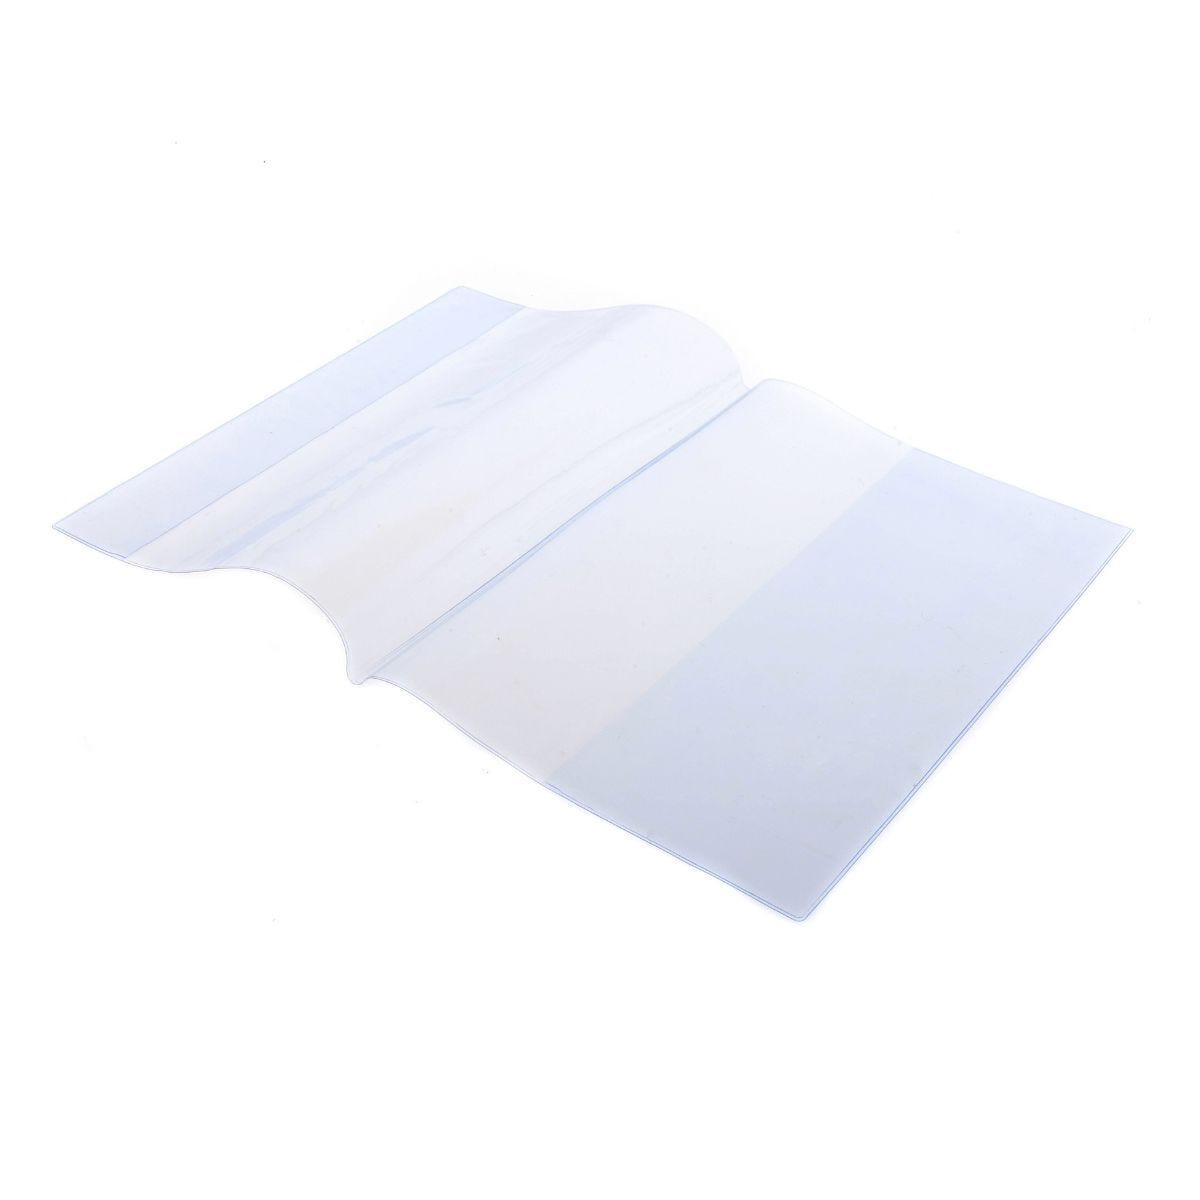 Ryman Exercise Book Cover A4 Pack of 10